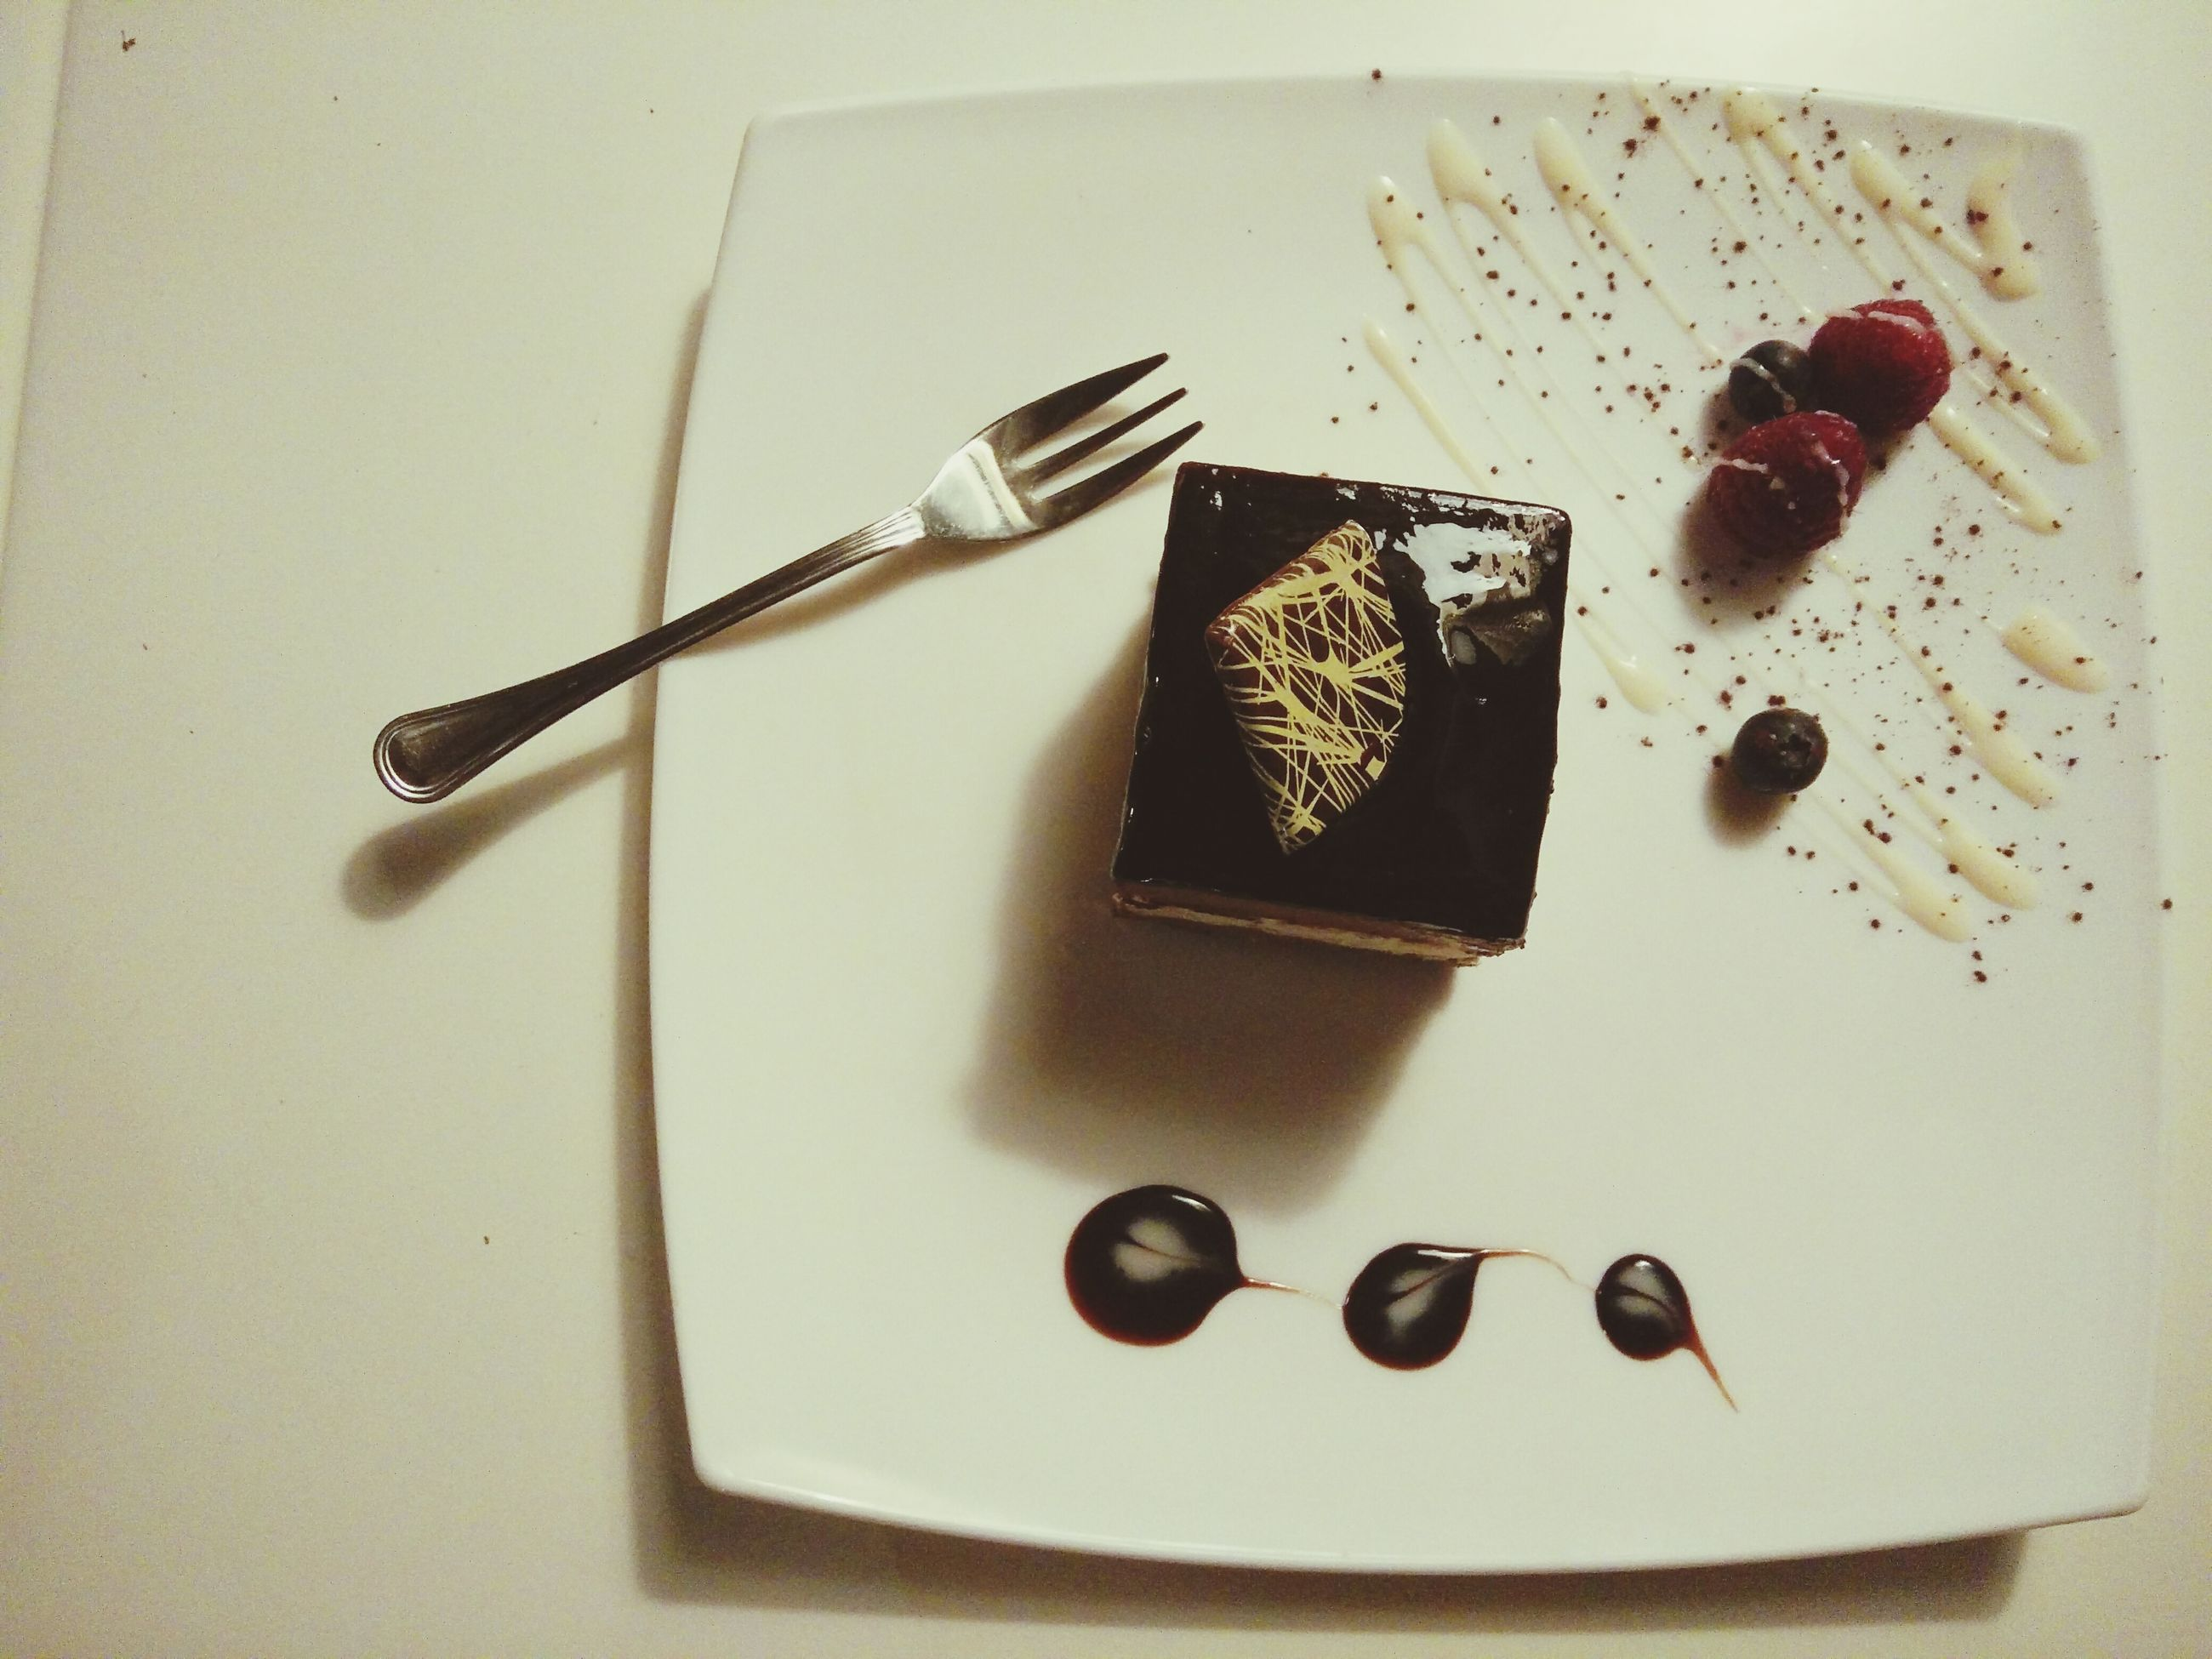 indoors, still life, table, food and drink, high angle view, close-up, food, sweet food, no people, variation, hanging, cake, plate, wall - building feature, fork, chocolate, decoration, selective focus, shadow, freshness